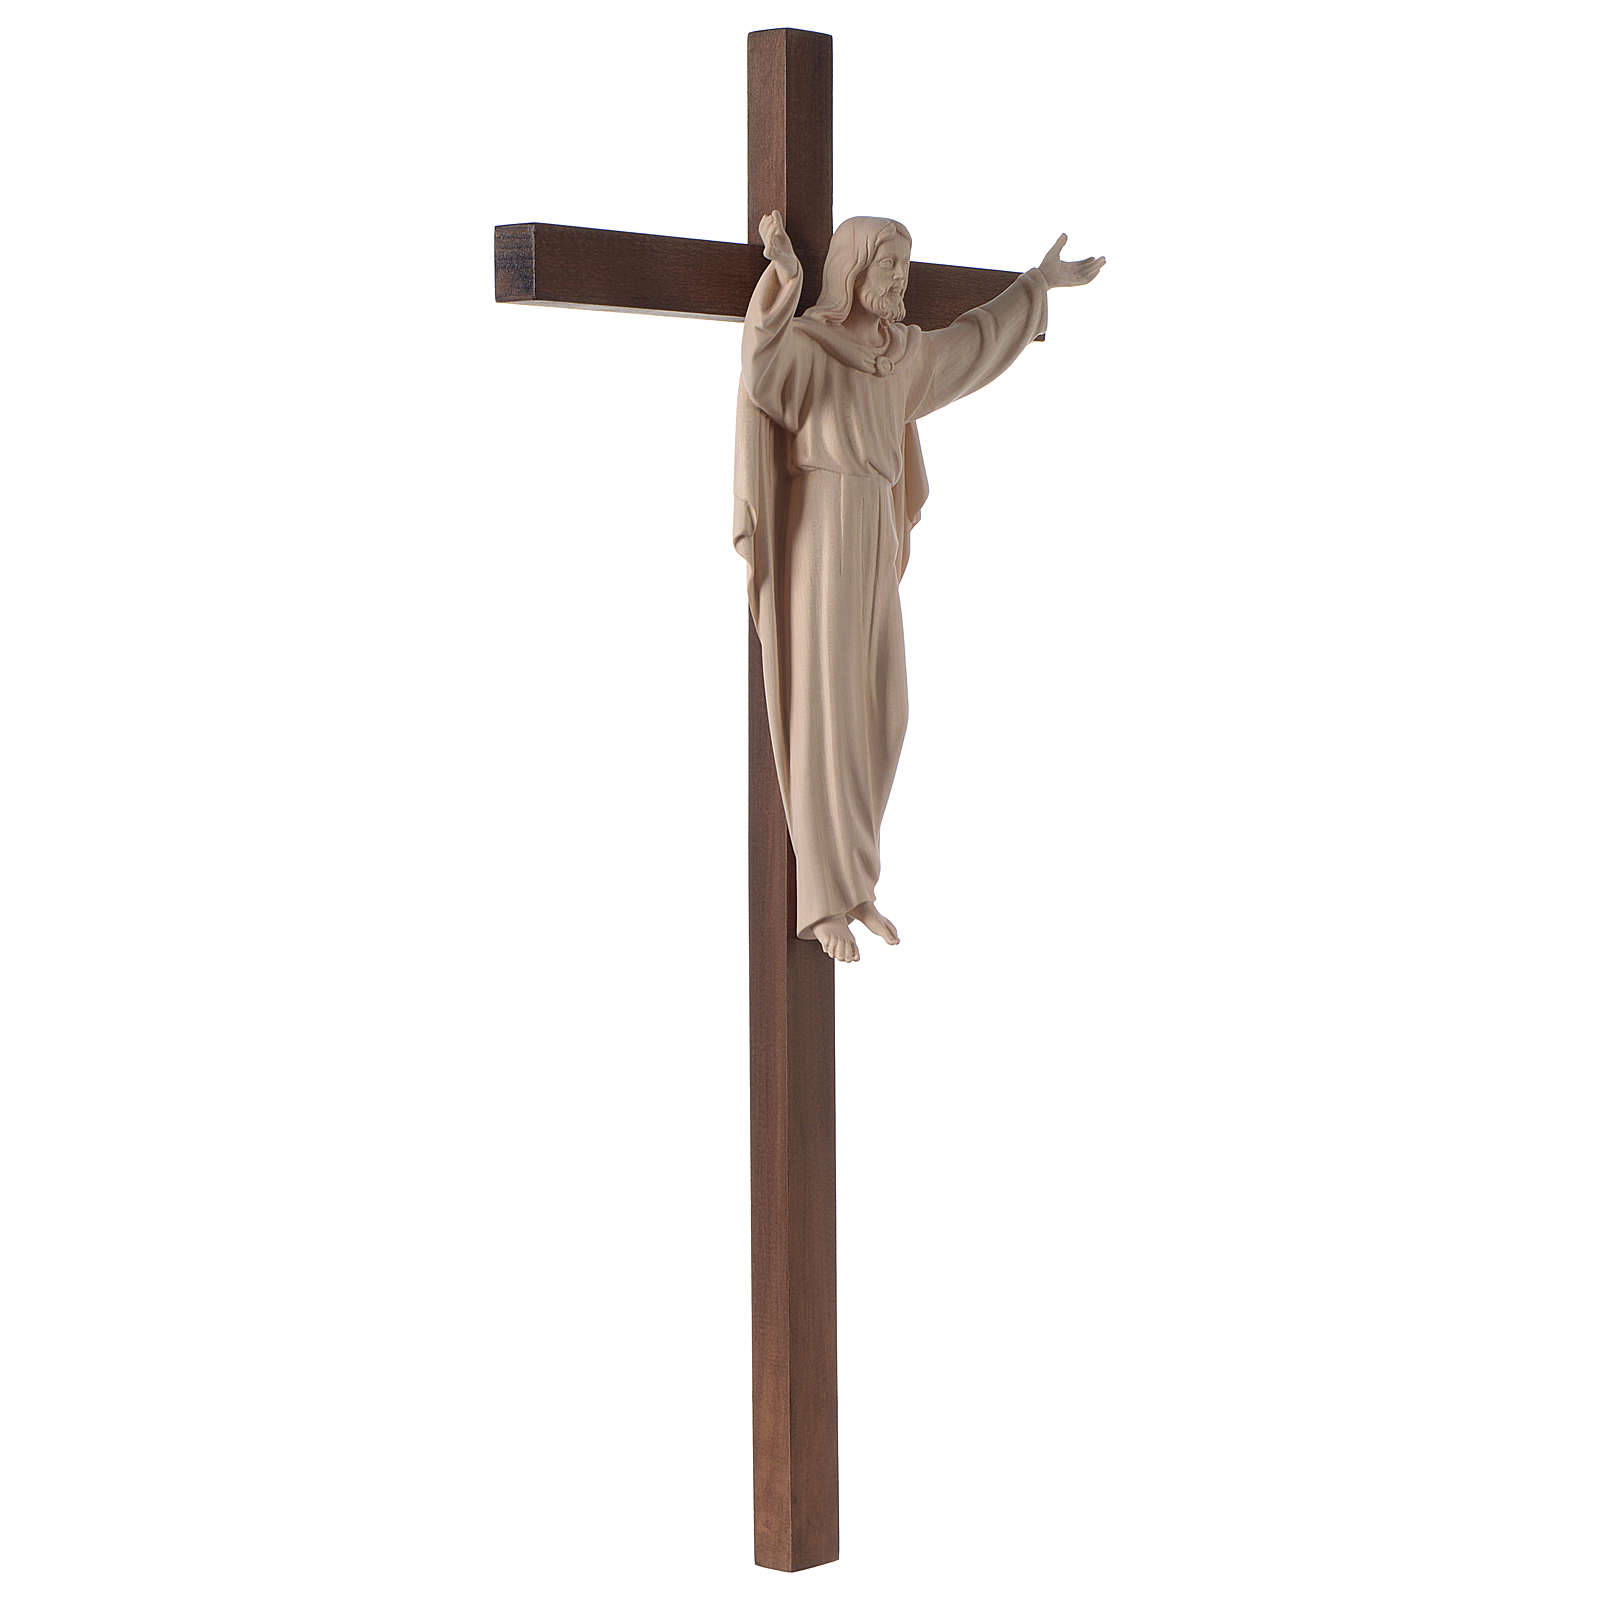 Resurrected Jesus Christ statue in natural wood on cross 4